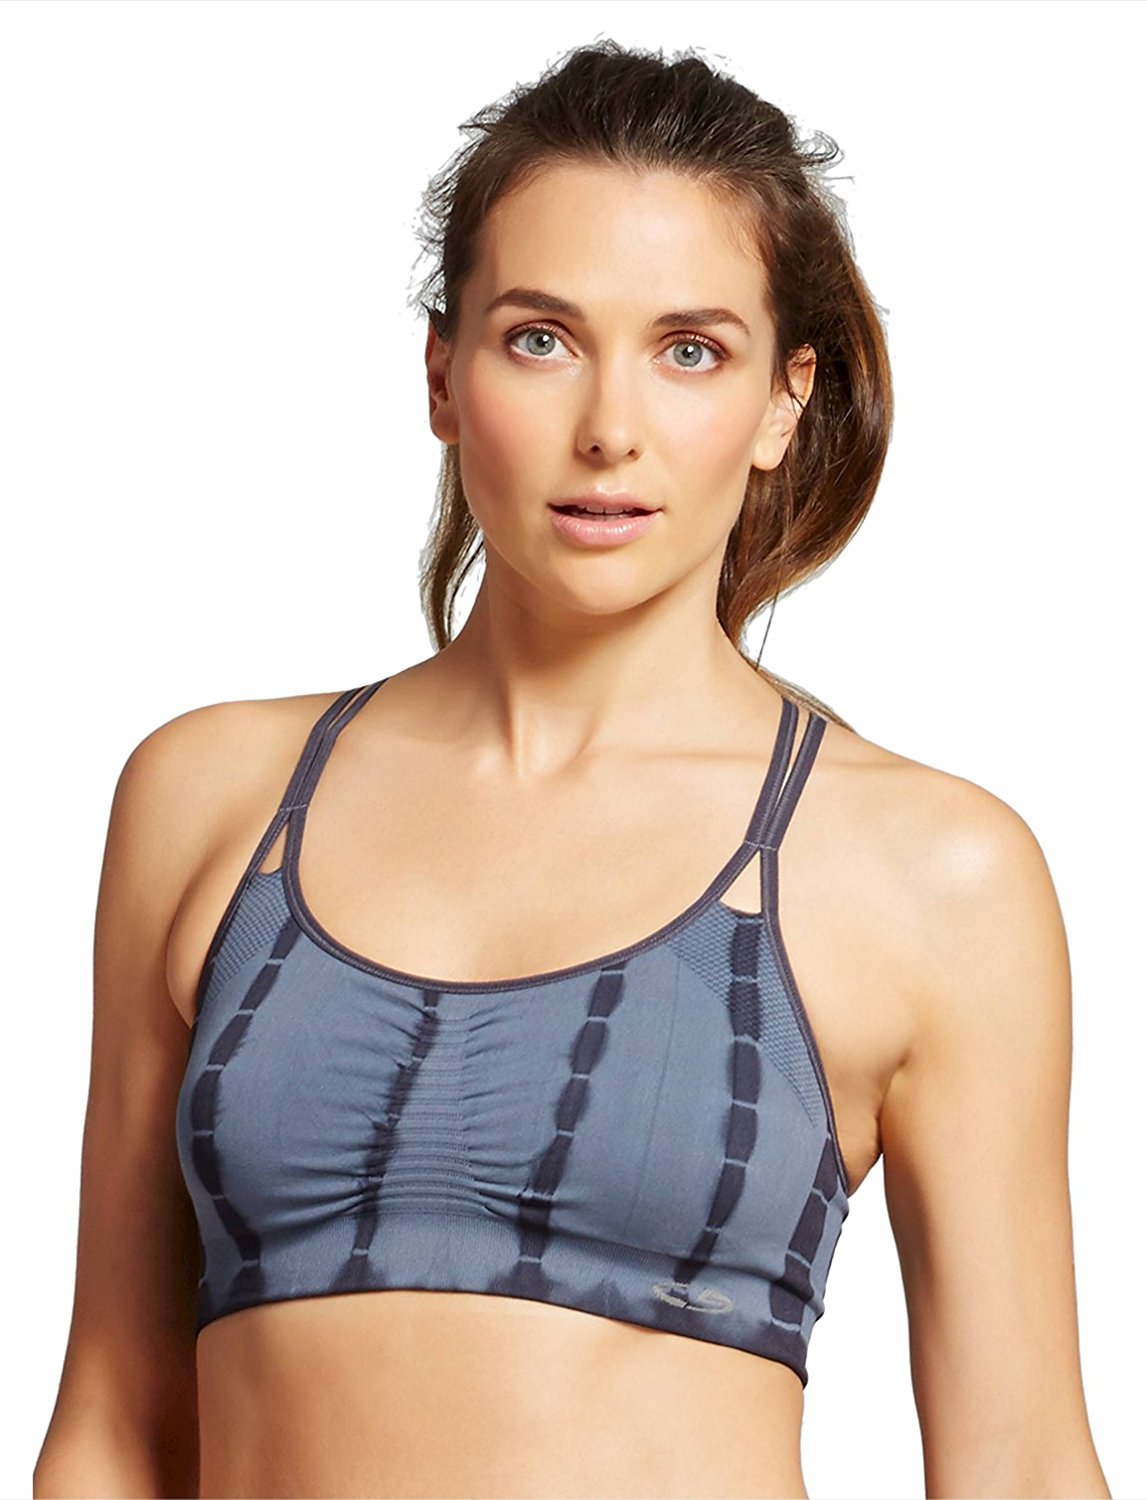 c9dba5d79f Get Quotations · C9 Champion Women s Seamless Tie Dye Strappy Sports Bra